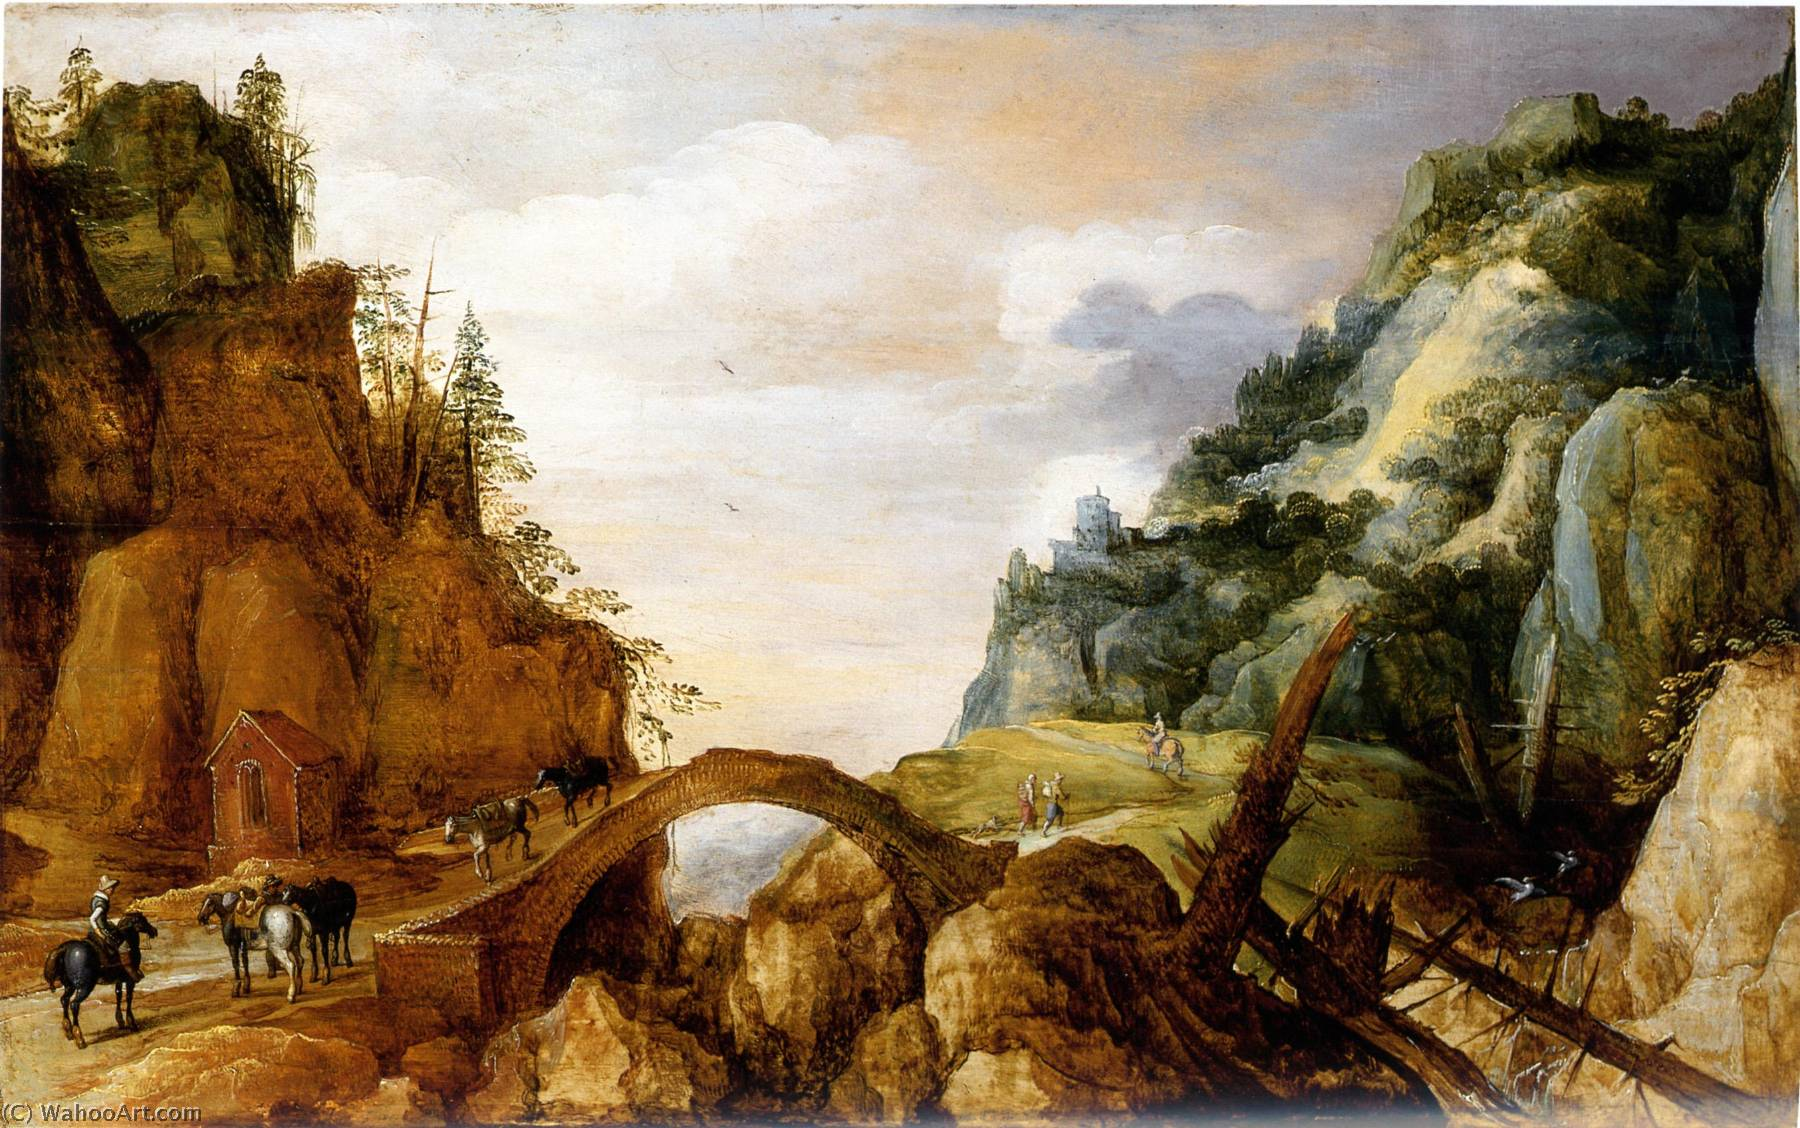 A Mountainous Landscape with Horsemen and Travellers Crossing a Bridge, Oil On Panel by Joos De Momper The Younger (1564-1635)